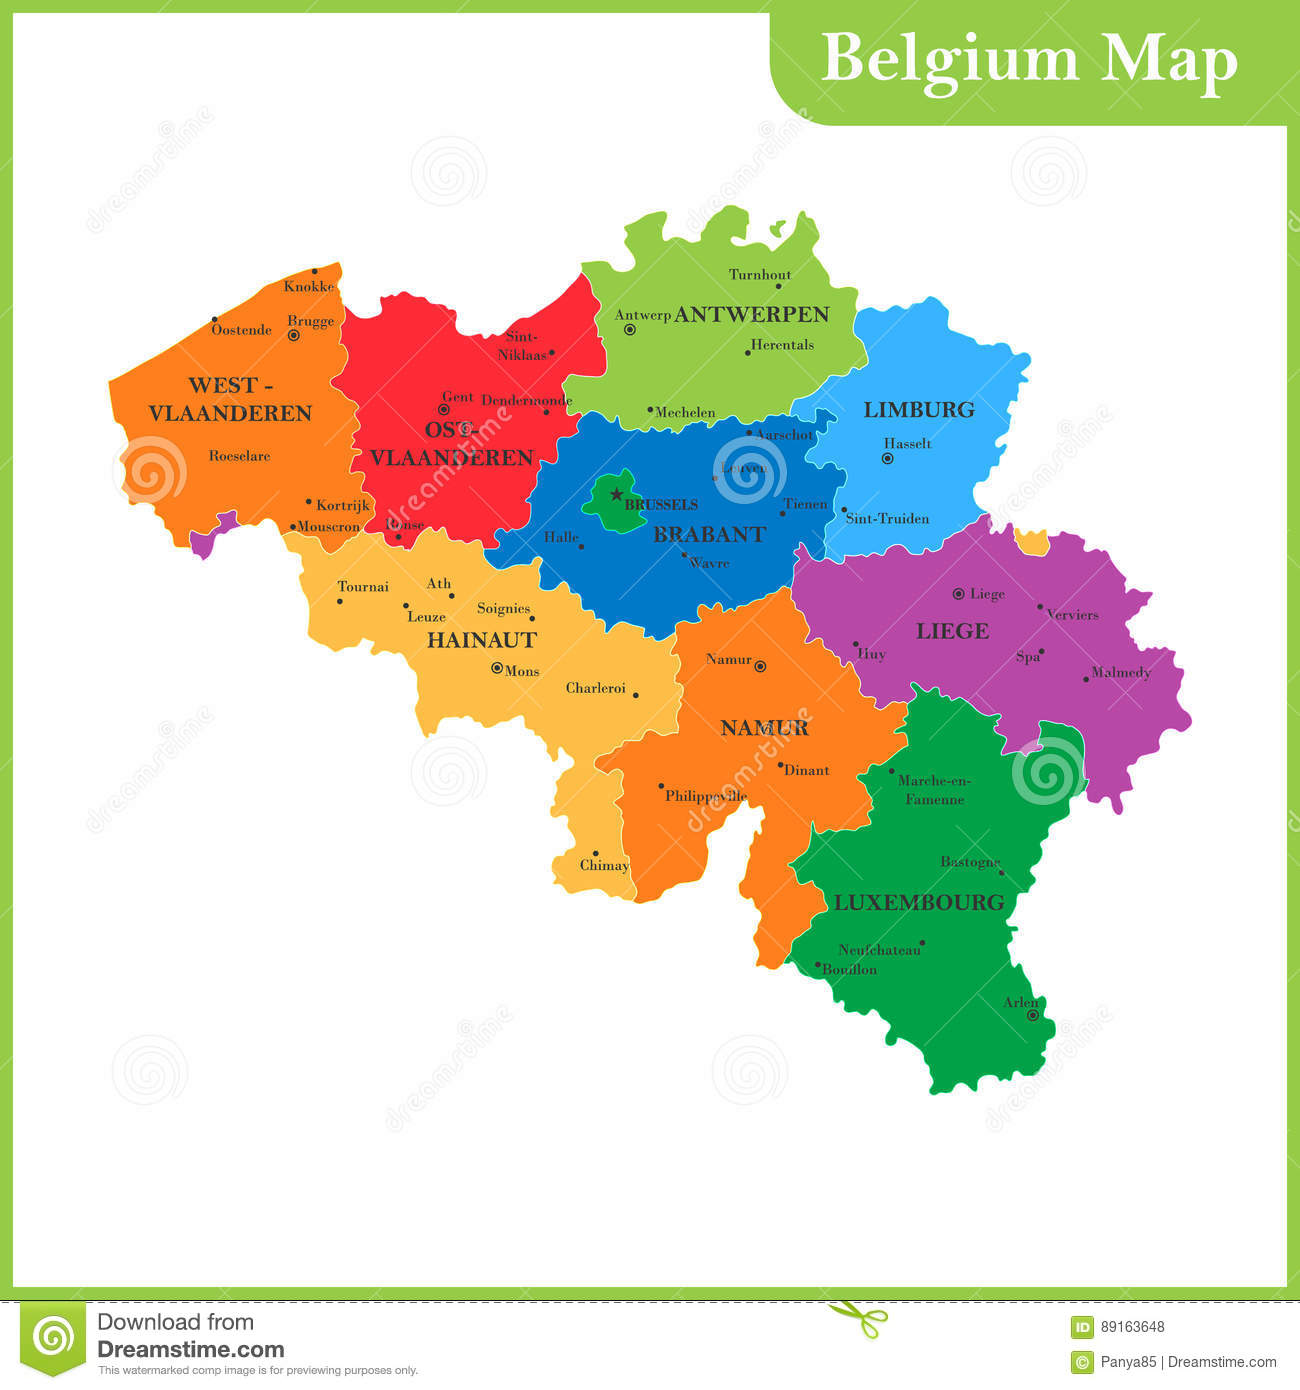 The Detailed Map Of The Belgium With Regions Or States And Cities